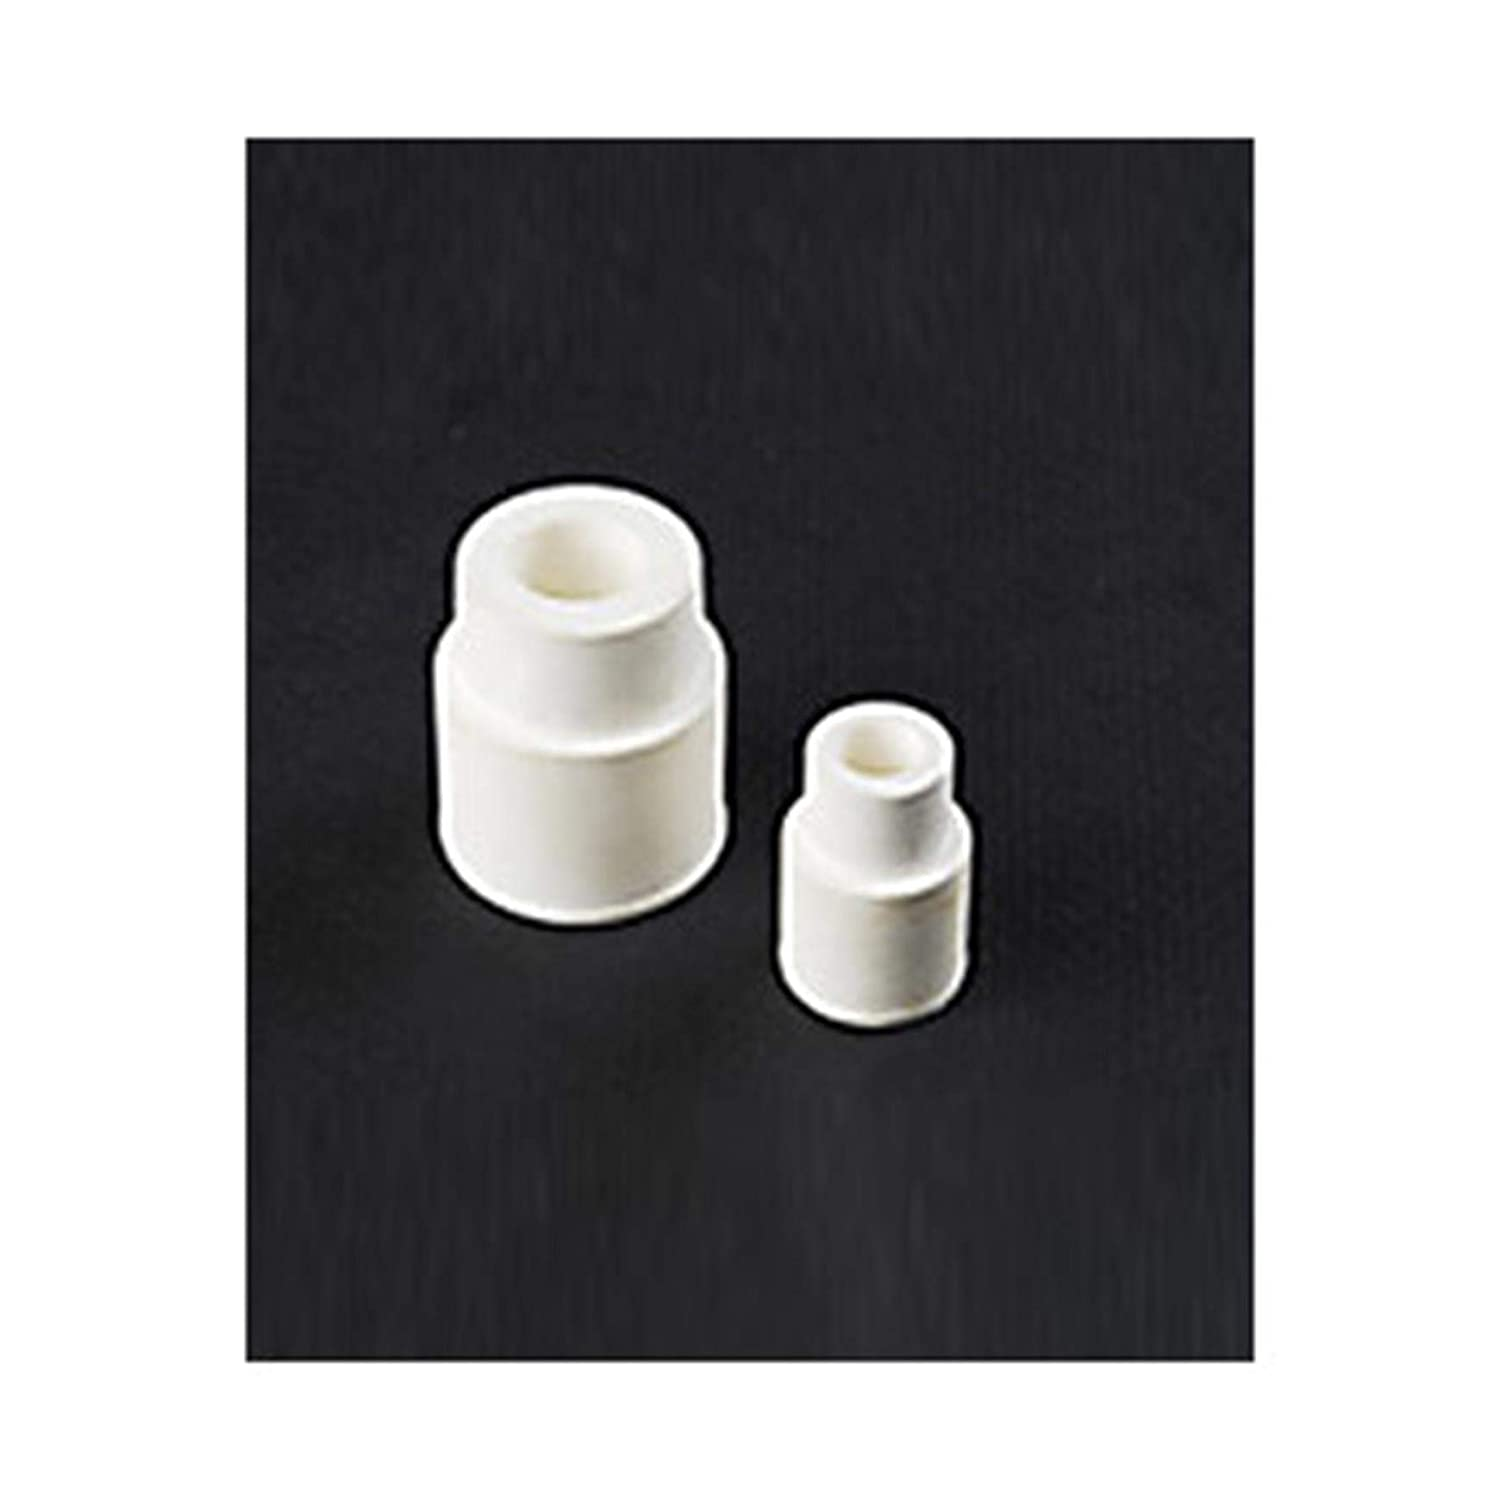 Kemtech America RS111922 Synthware Septum Stopper, Sleeve Type, Used with 19/22 Outer Joint